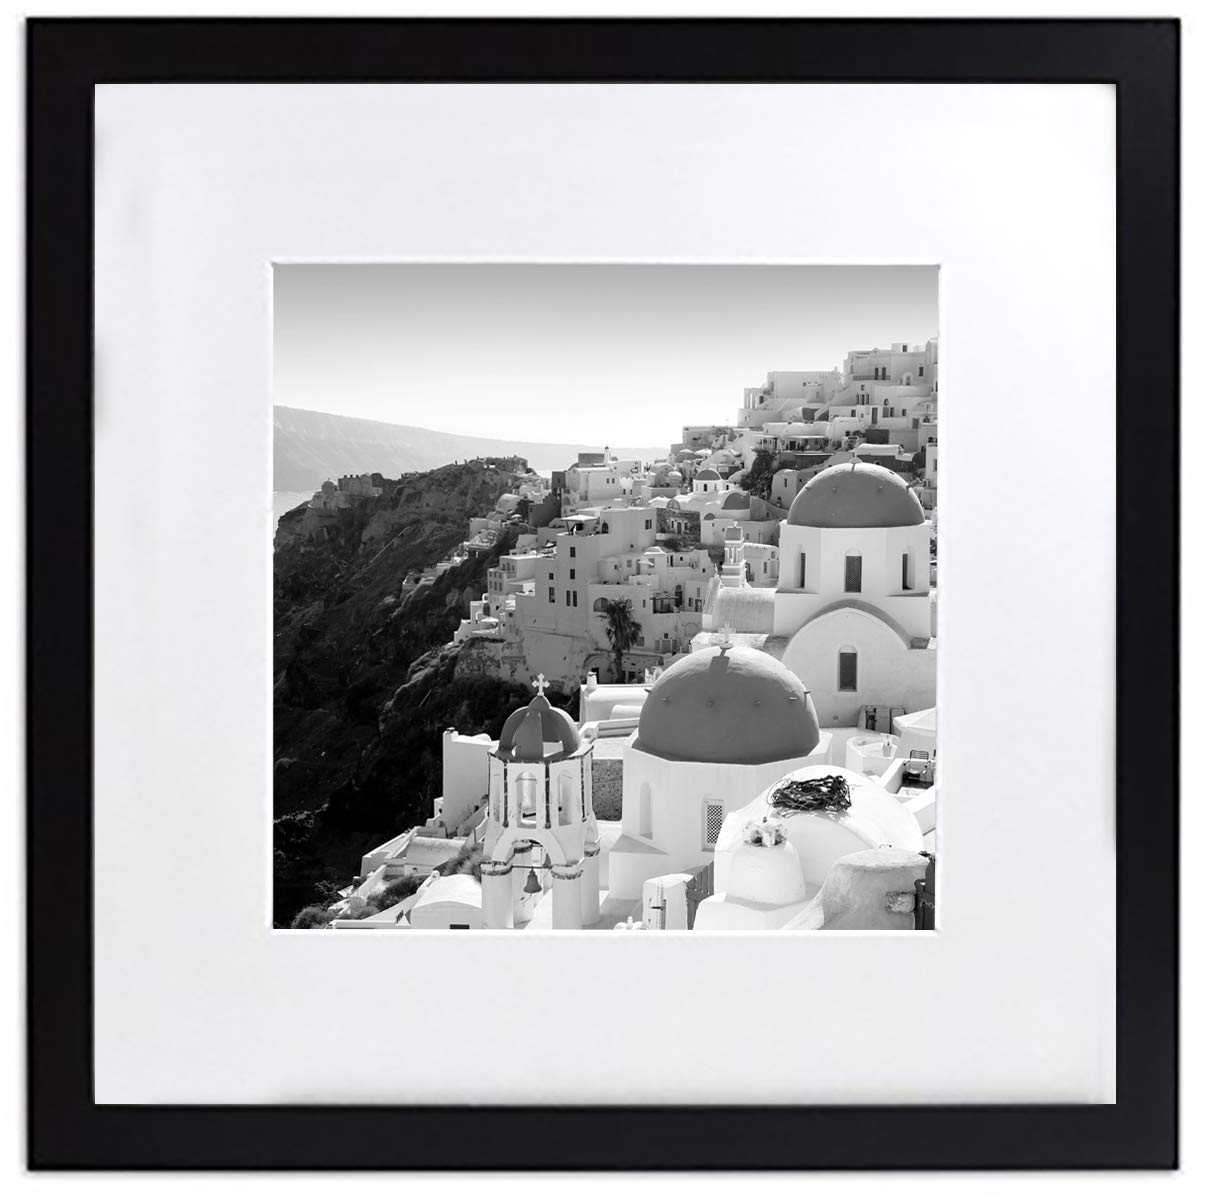 Golden State Art, Smartphone Instagram Frame Collection, 12x12-inch Square Photo Wood Frames with Photo Mat & Real Glass for 8x8-inch Pictures, Black by Golden State Art